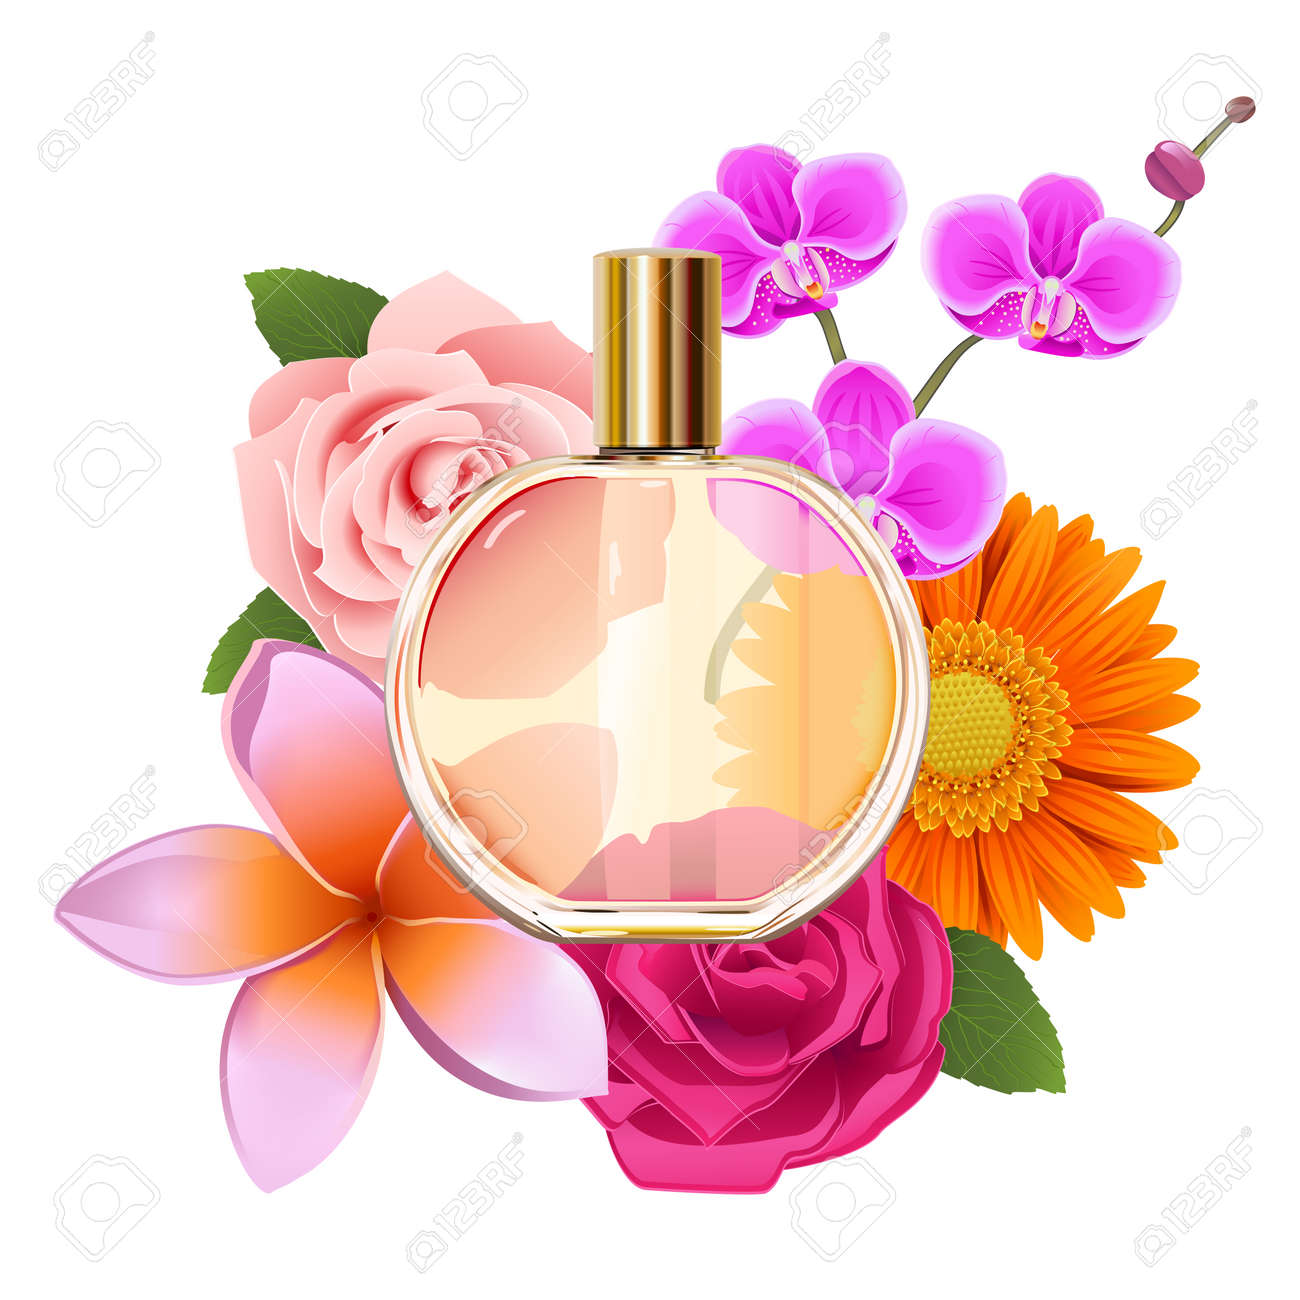 Vector Perfume with Flowers isolated on white background - 157102156